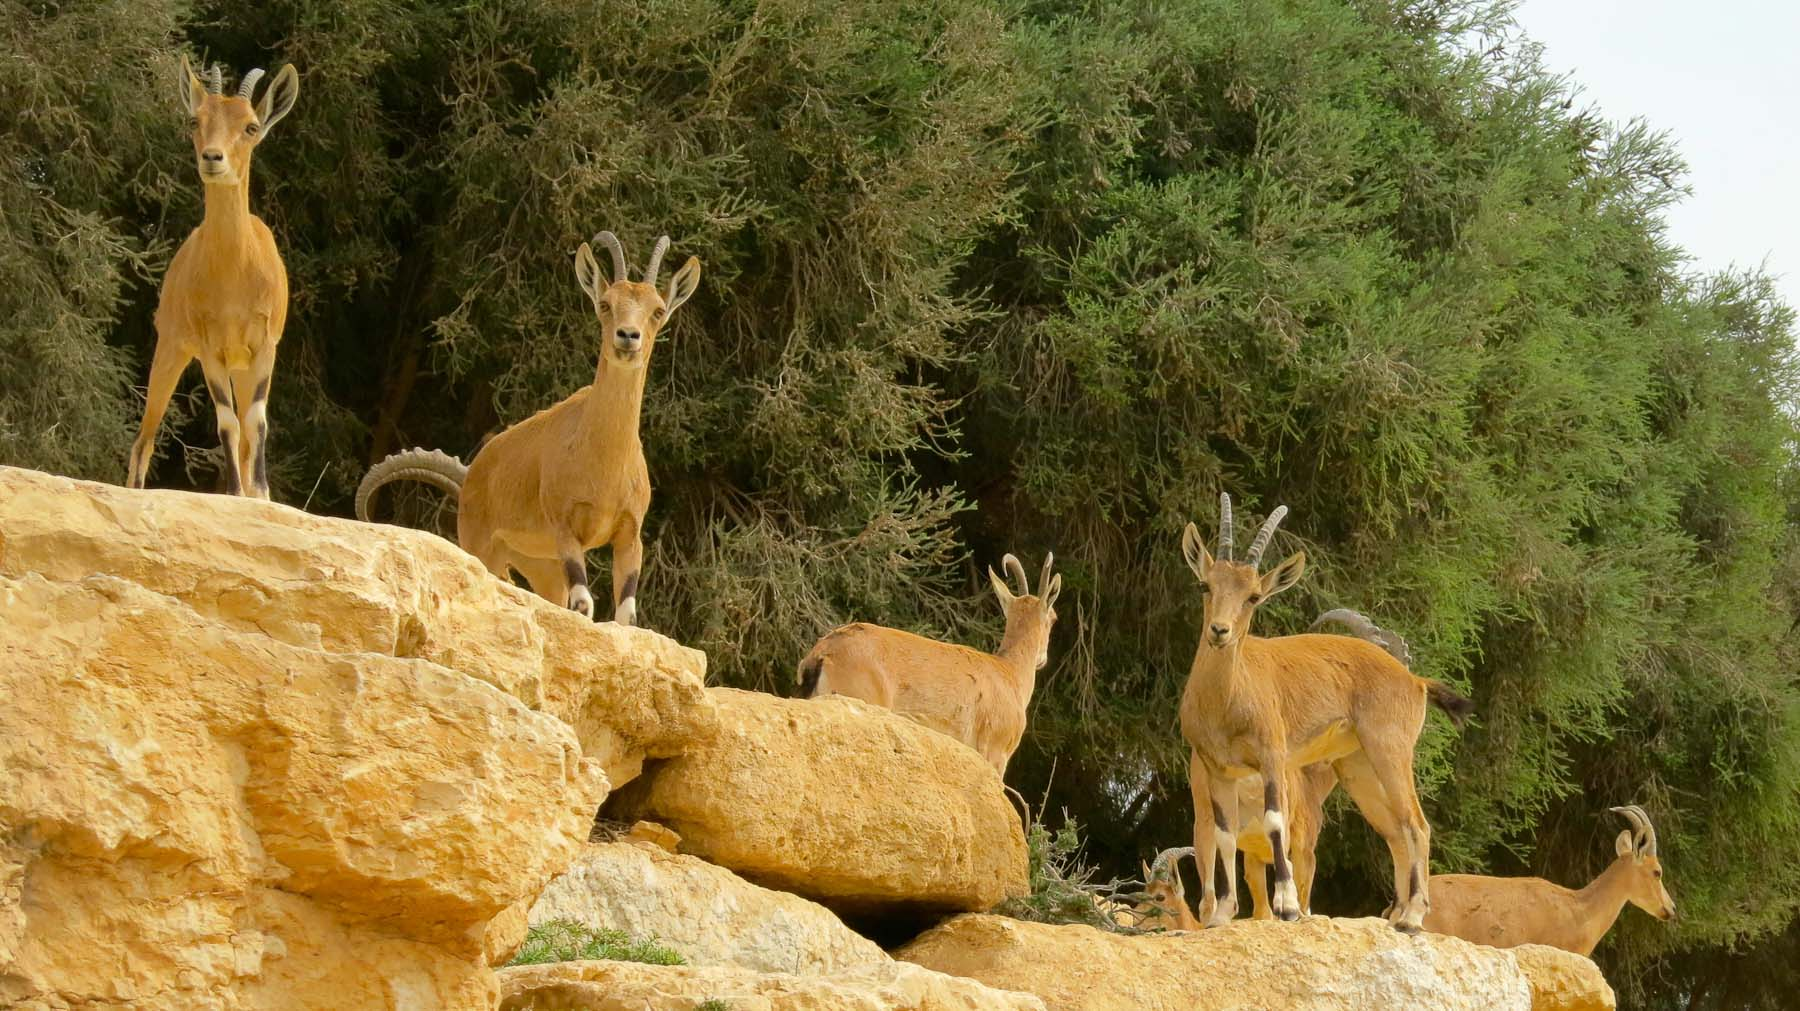 Day two brings out the wildlife at Ben Gurion's resting place.